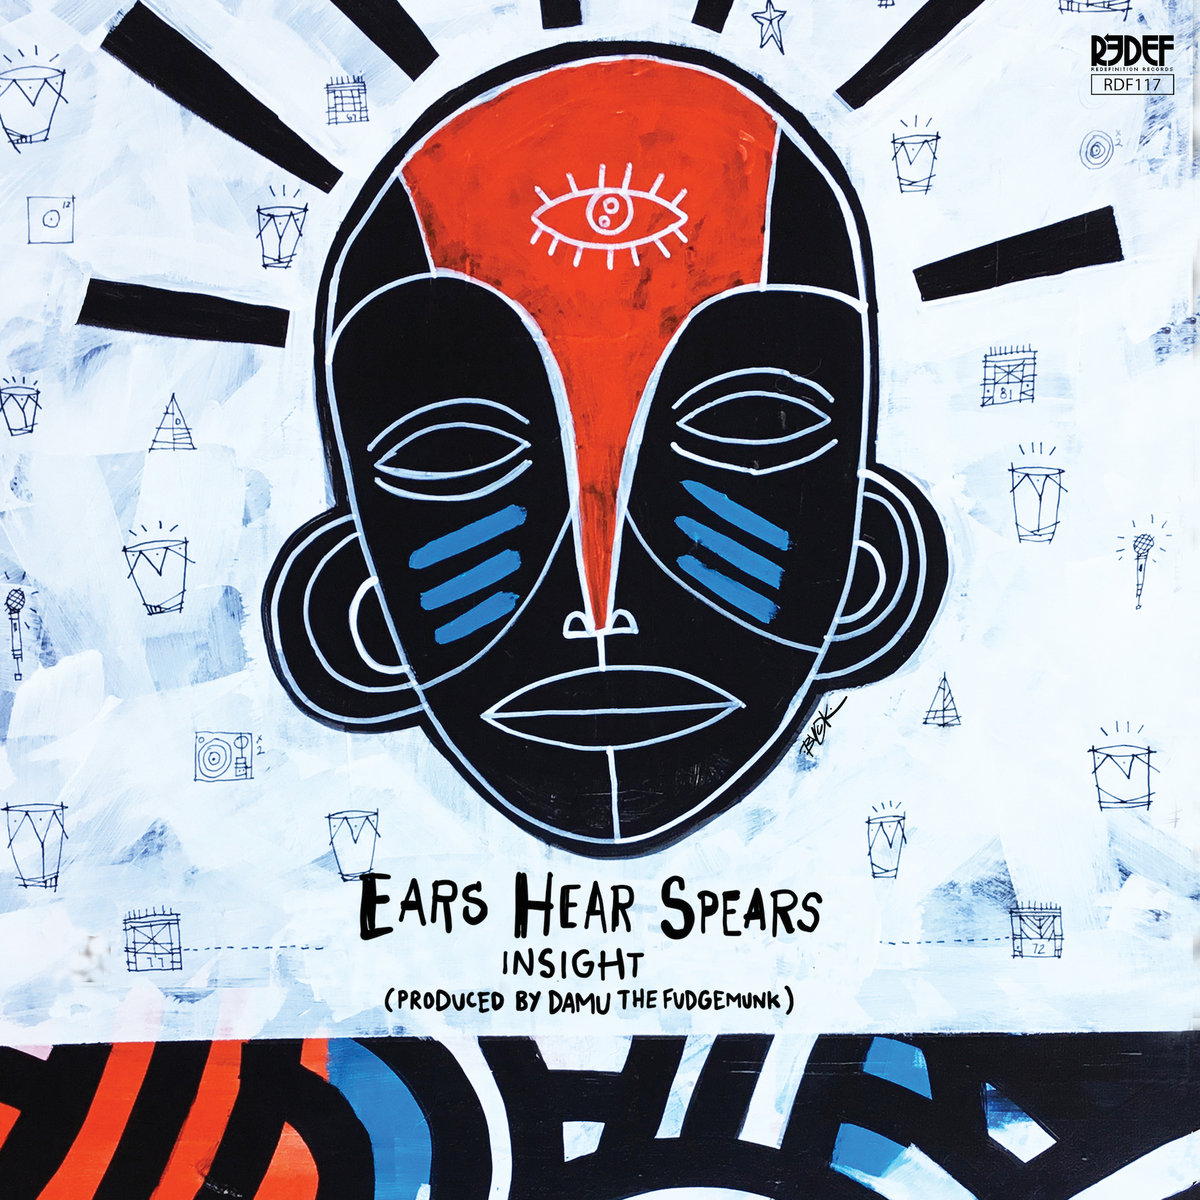 Insight___damu_the_fudgemunk_presenta_ears_hear_spears